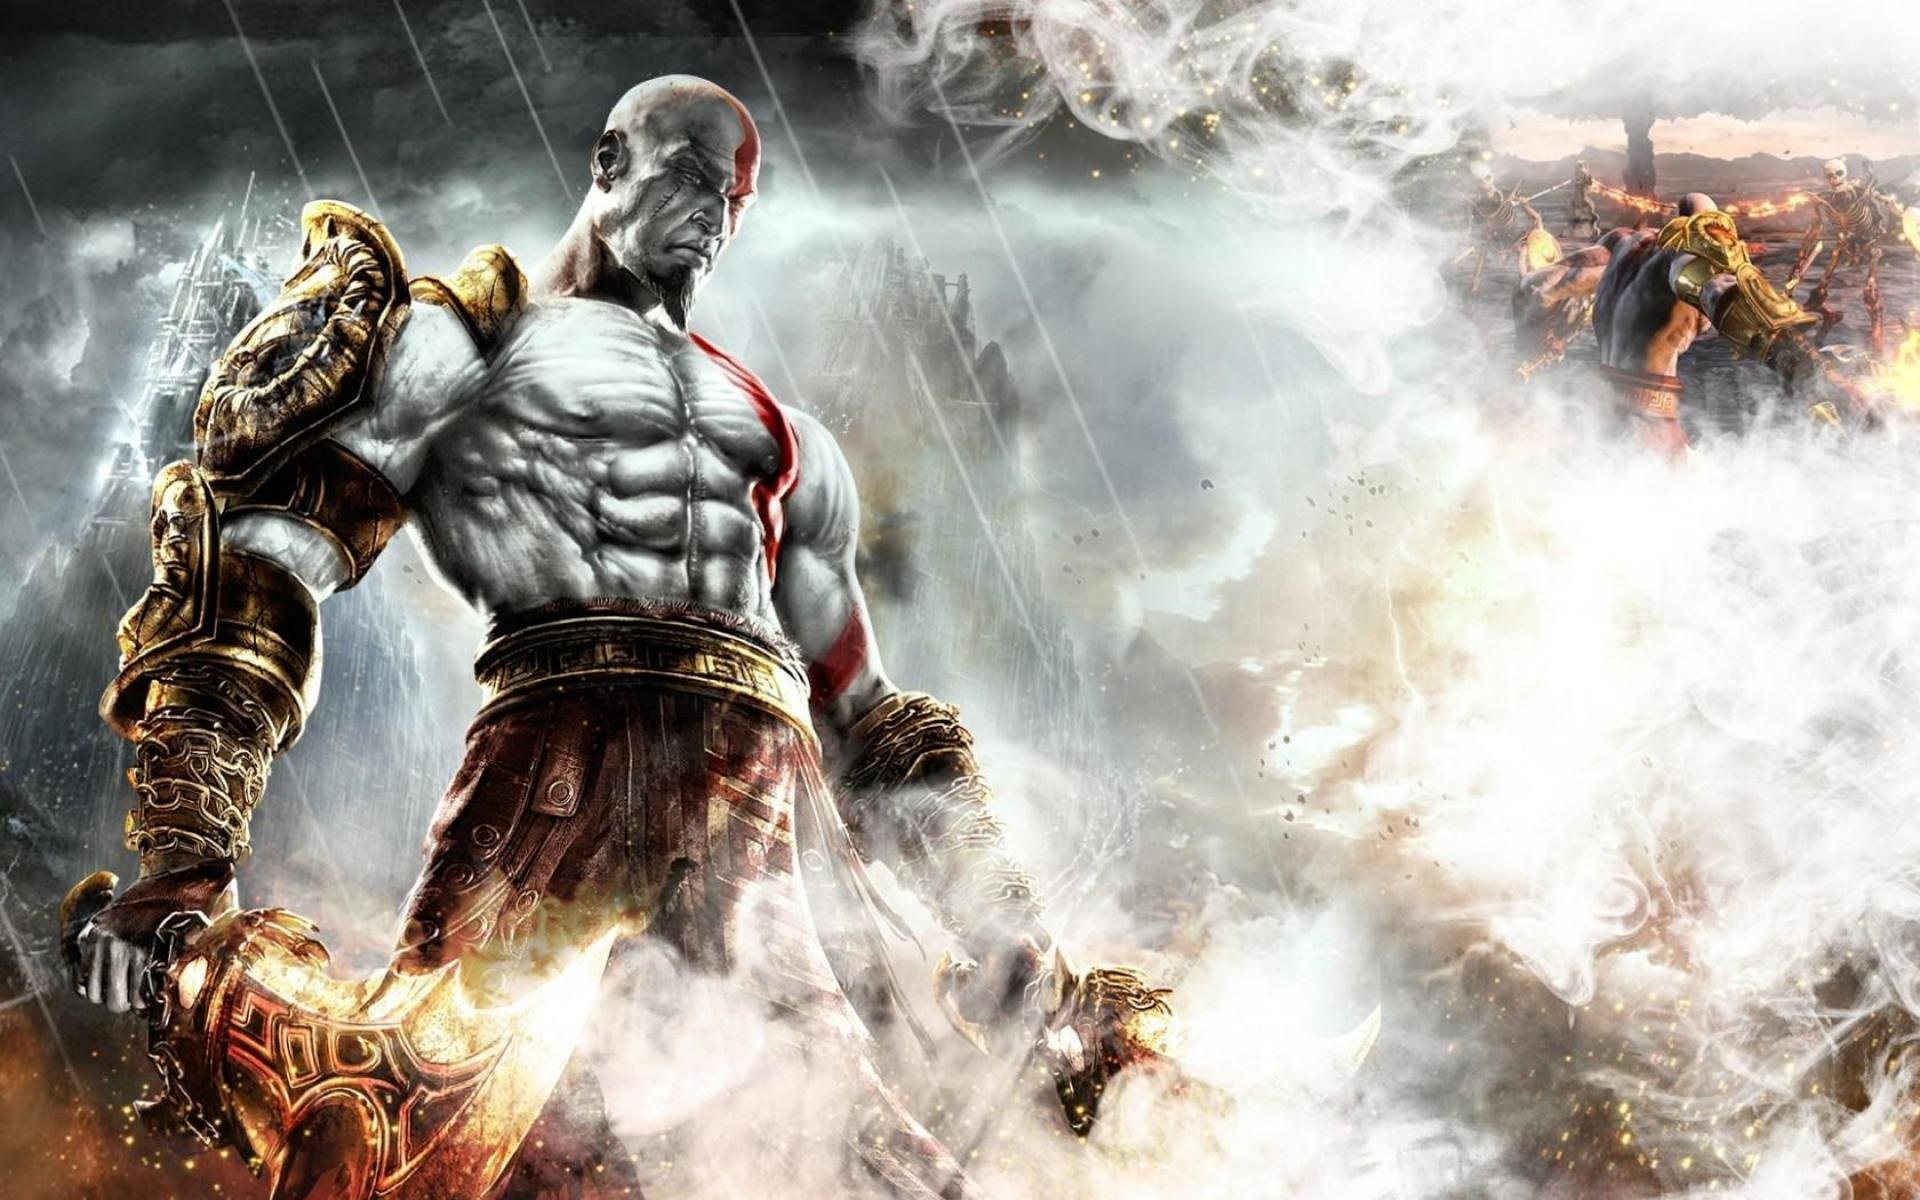 God Of War Game Video Action Adventure Fantasy Fighting